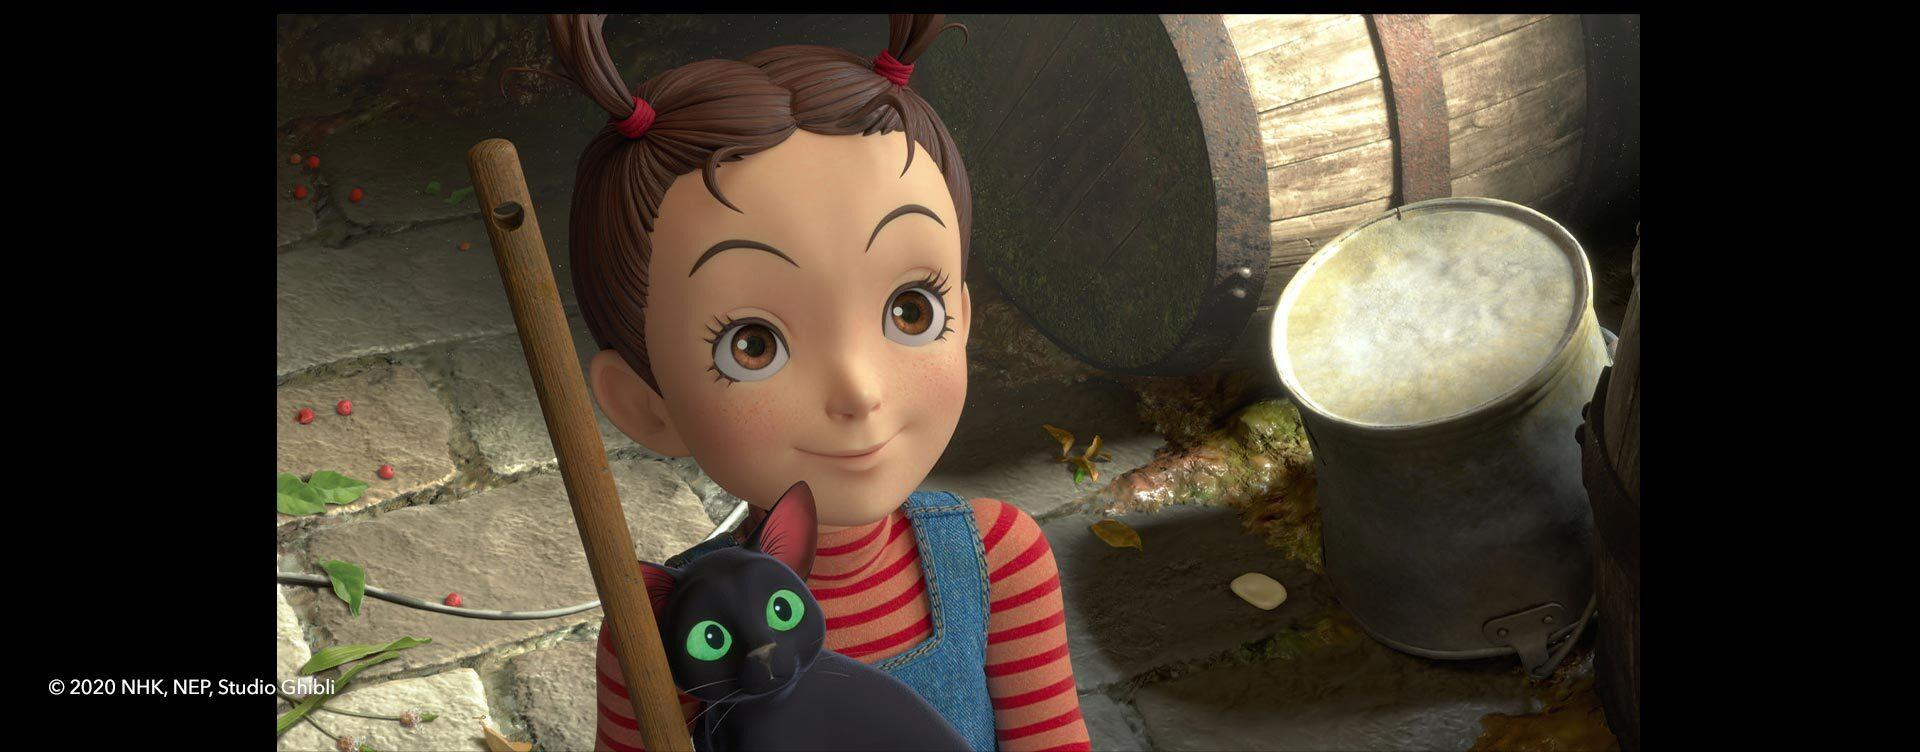 3D CG character from Earwig and the Witch